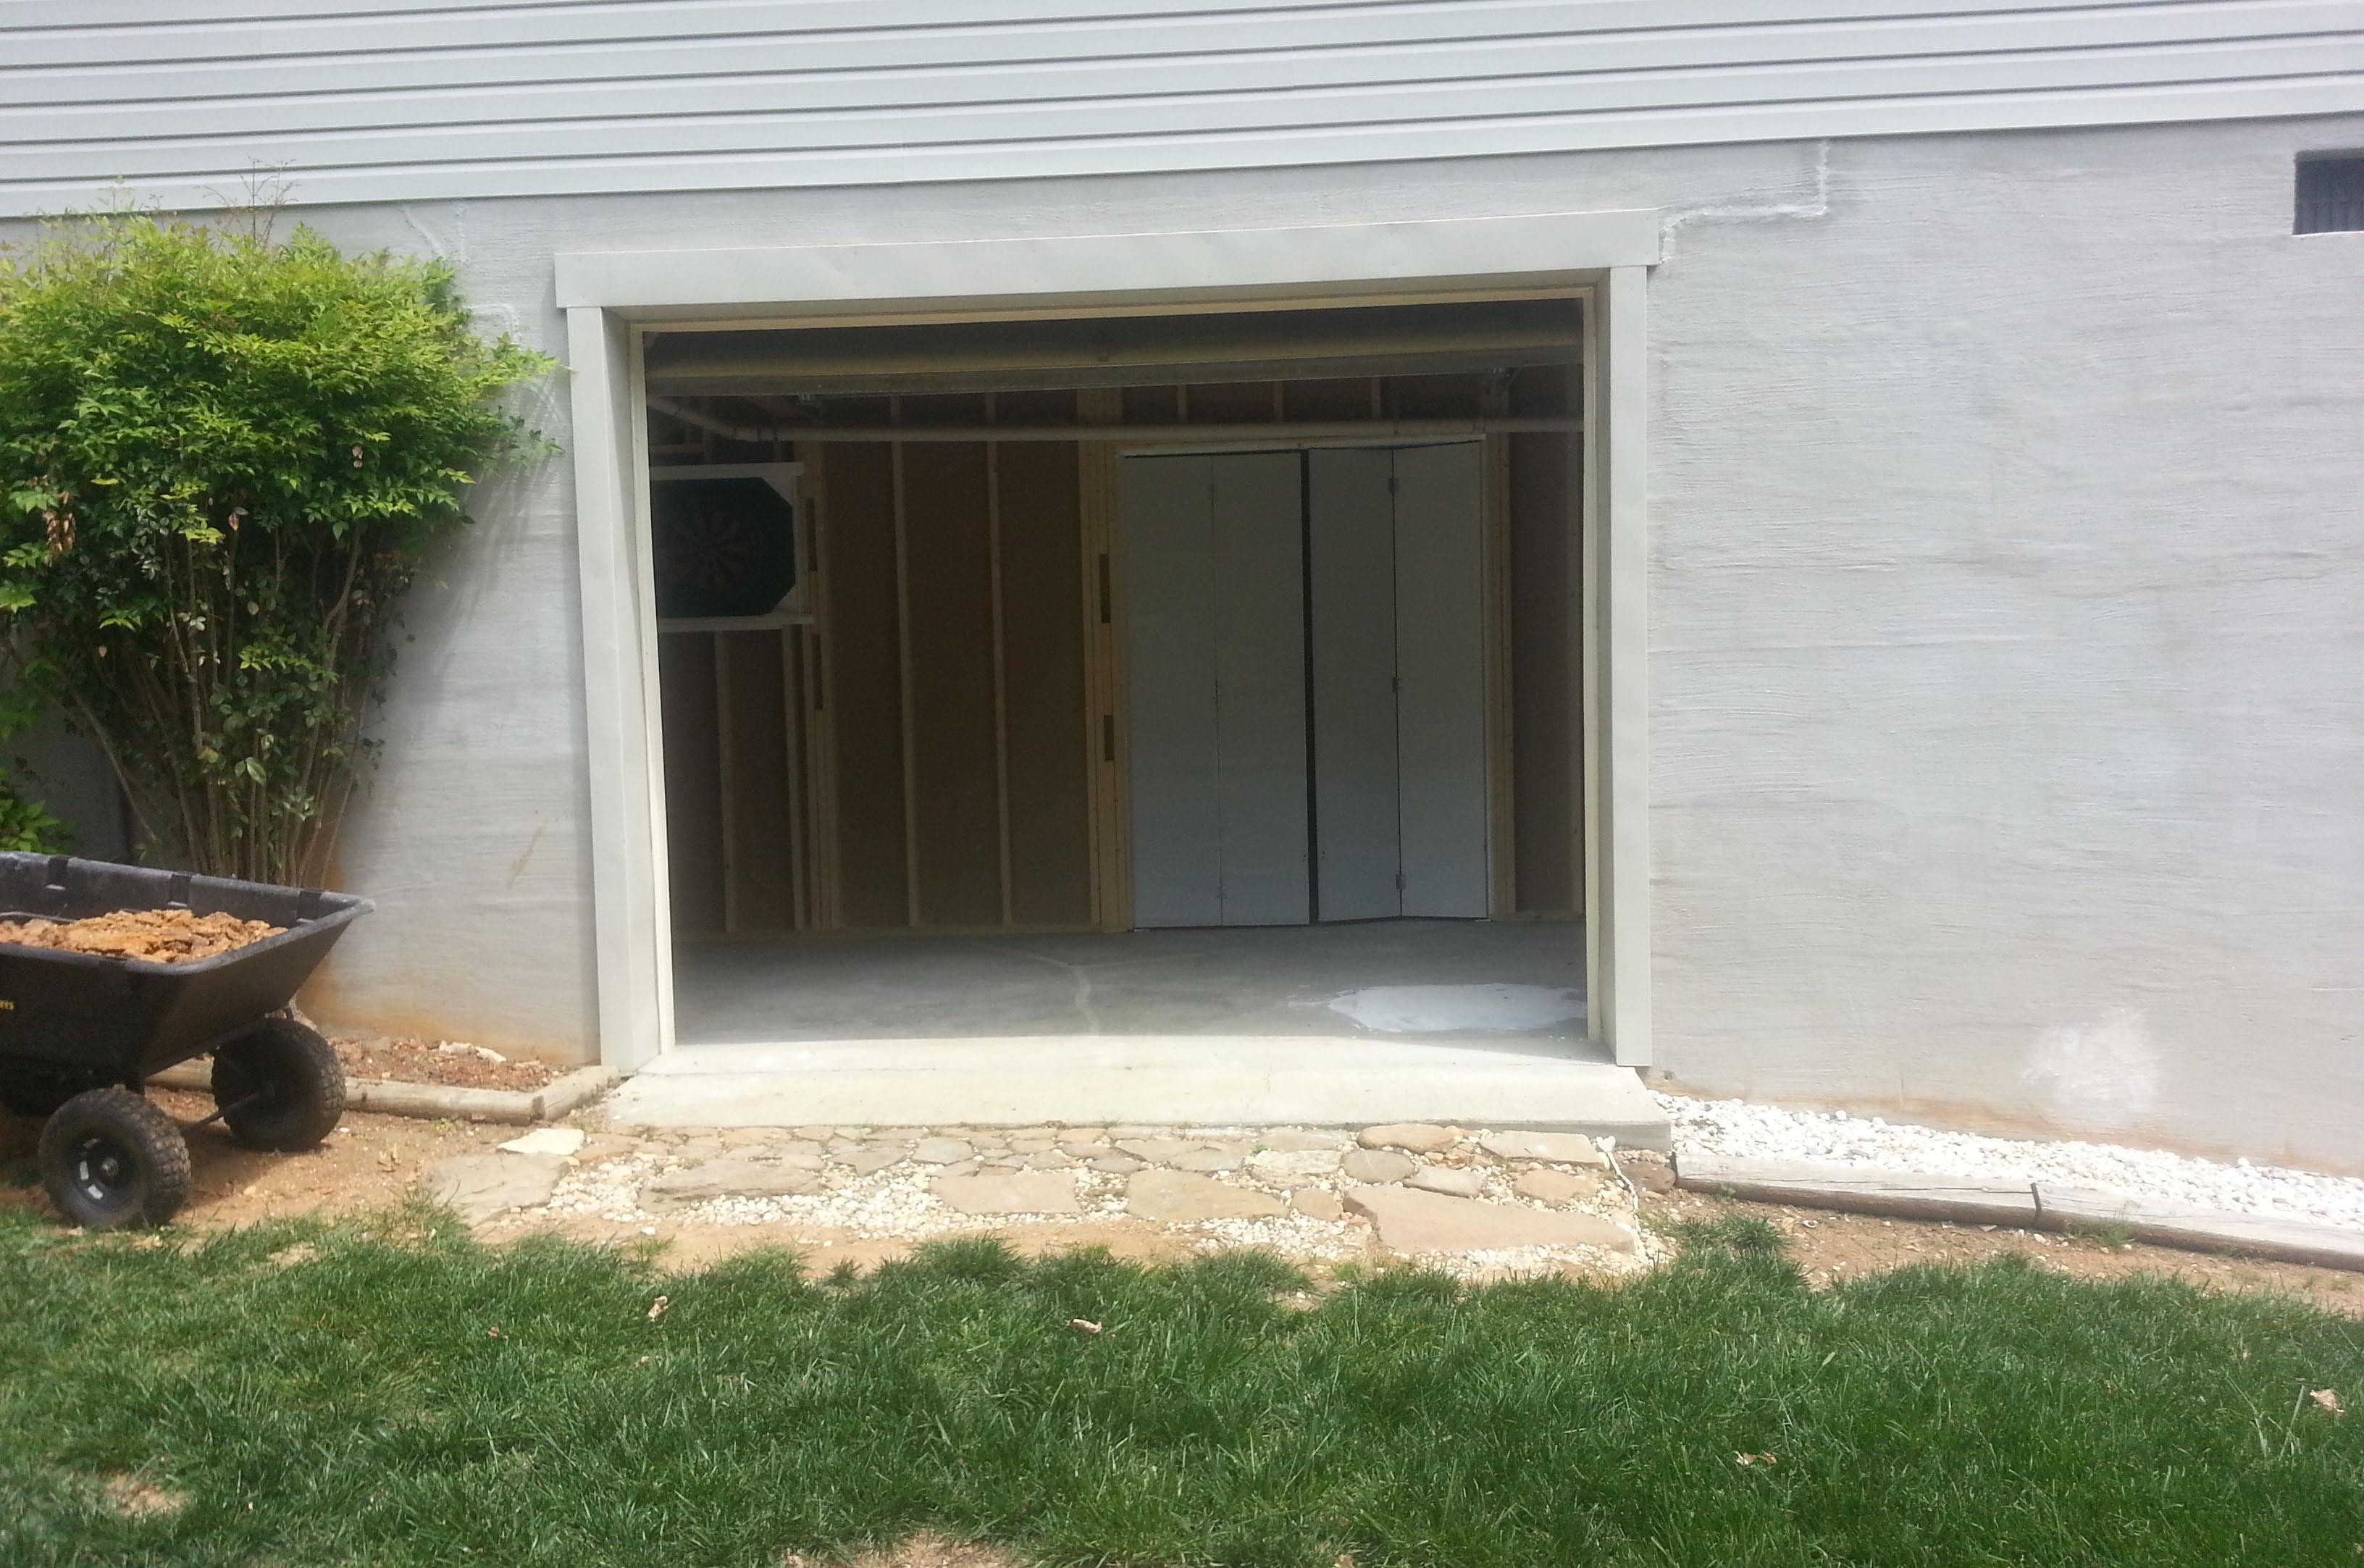 The homeowner wants to install French doors in this garage door opening. Itu0027s not that & Ask the Builder: Key to French door installation is good flashing ...